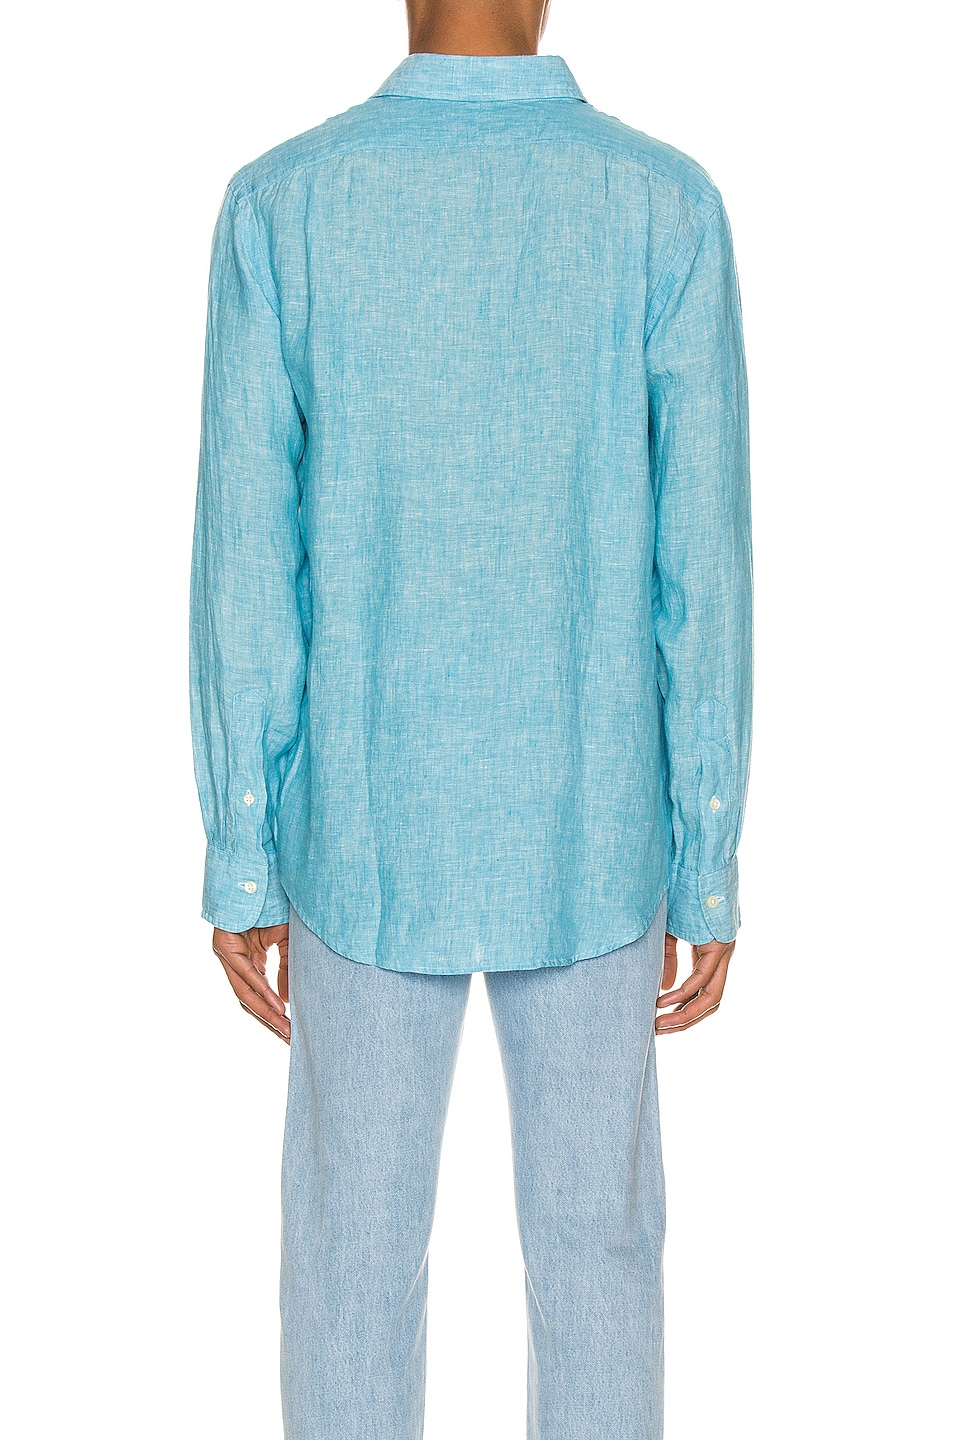 Image 3 of Polo Ralph Lauren Linen Chambray Long Sleeve Button Up Shirt in 4366F Turquoise